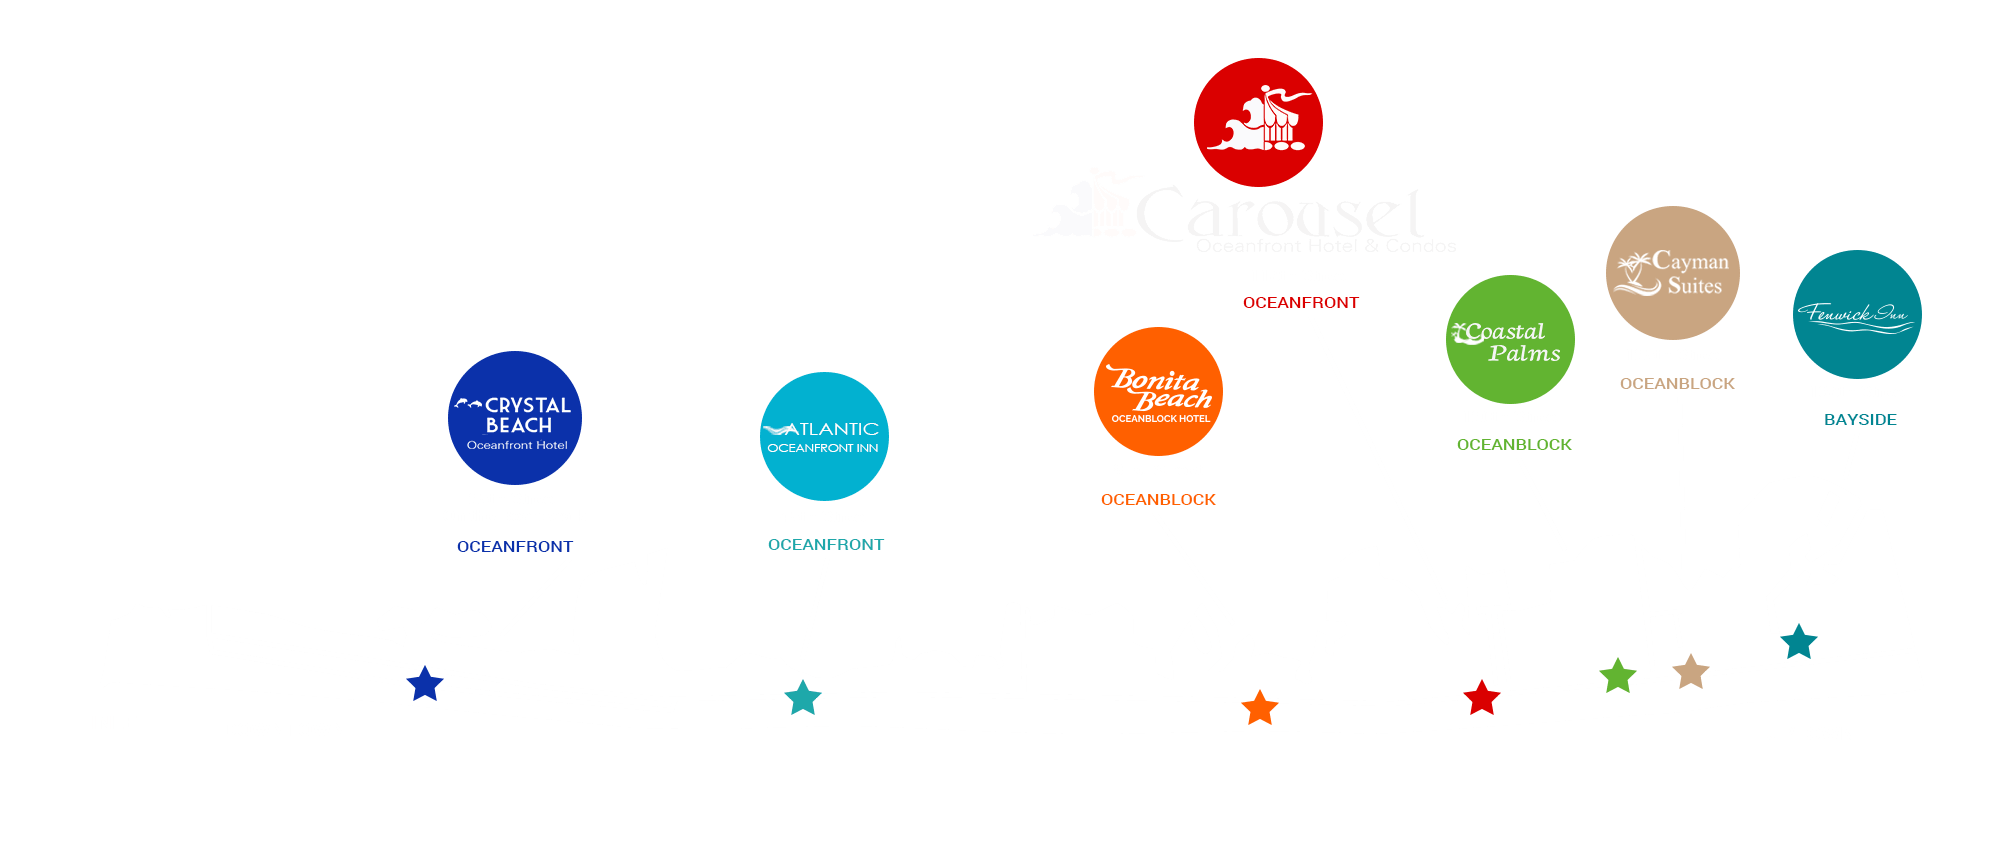 Map of Ocean City MD showing the locations of the Carousel Group Hotels